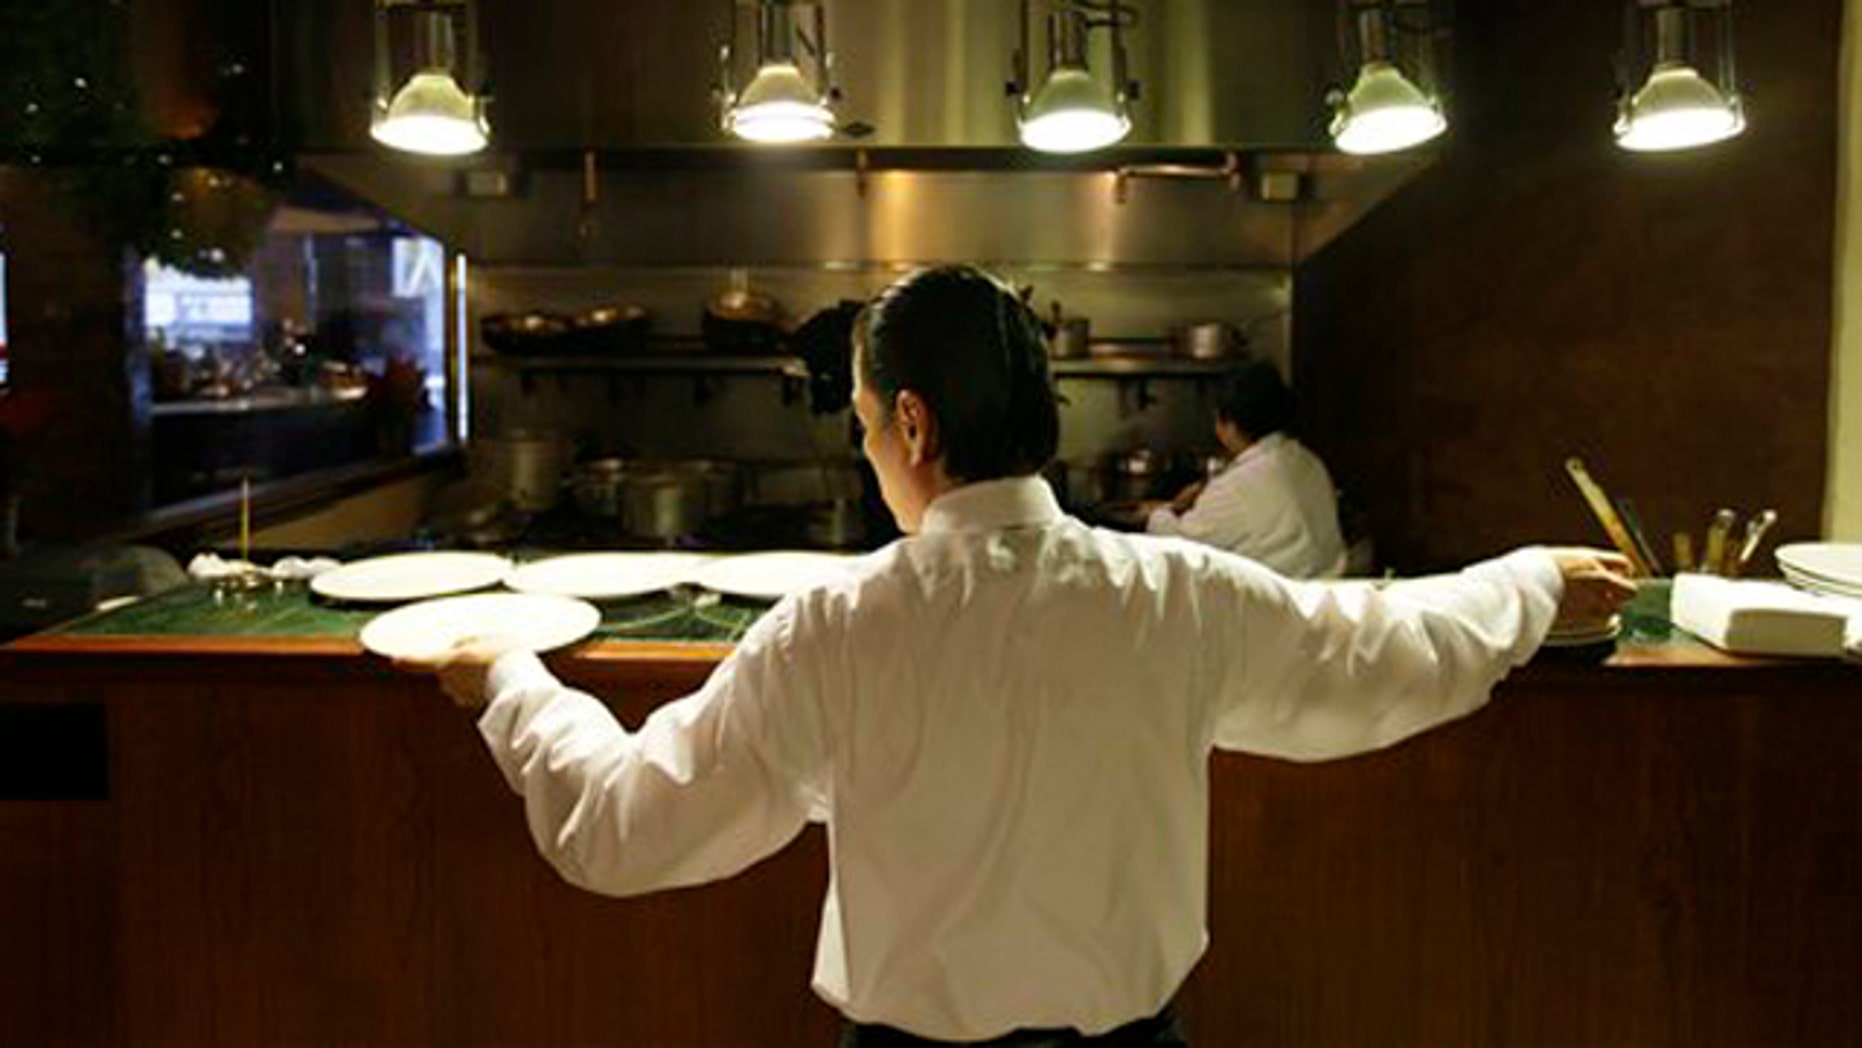 December 7, 2011: Workers prepare for lunch in the kitchen at the Palio D'Asti restaurant in San Francisco.